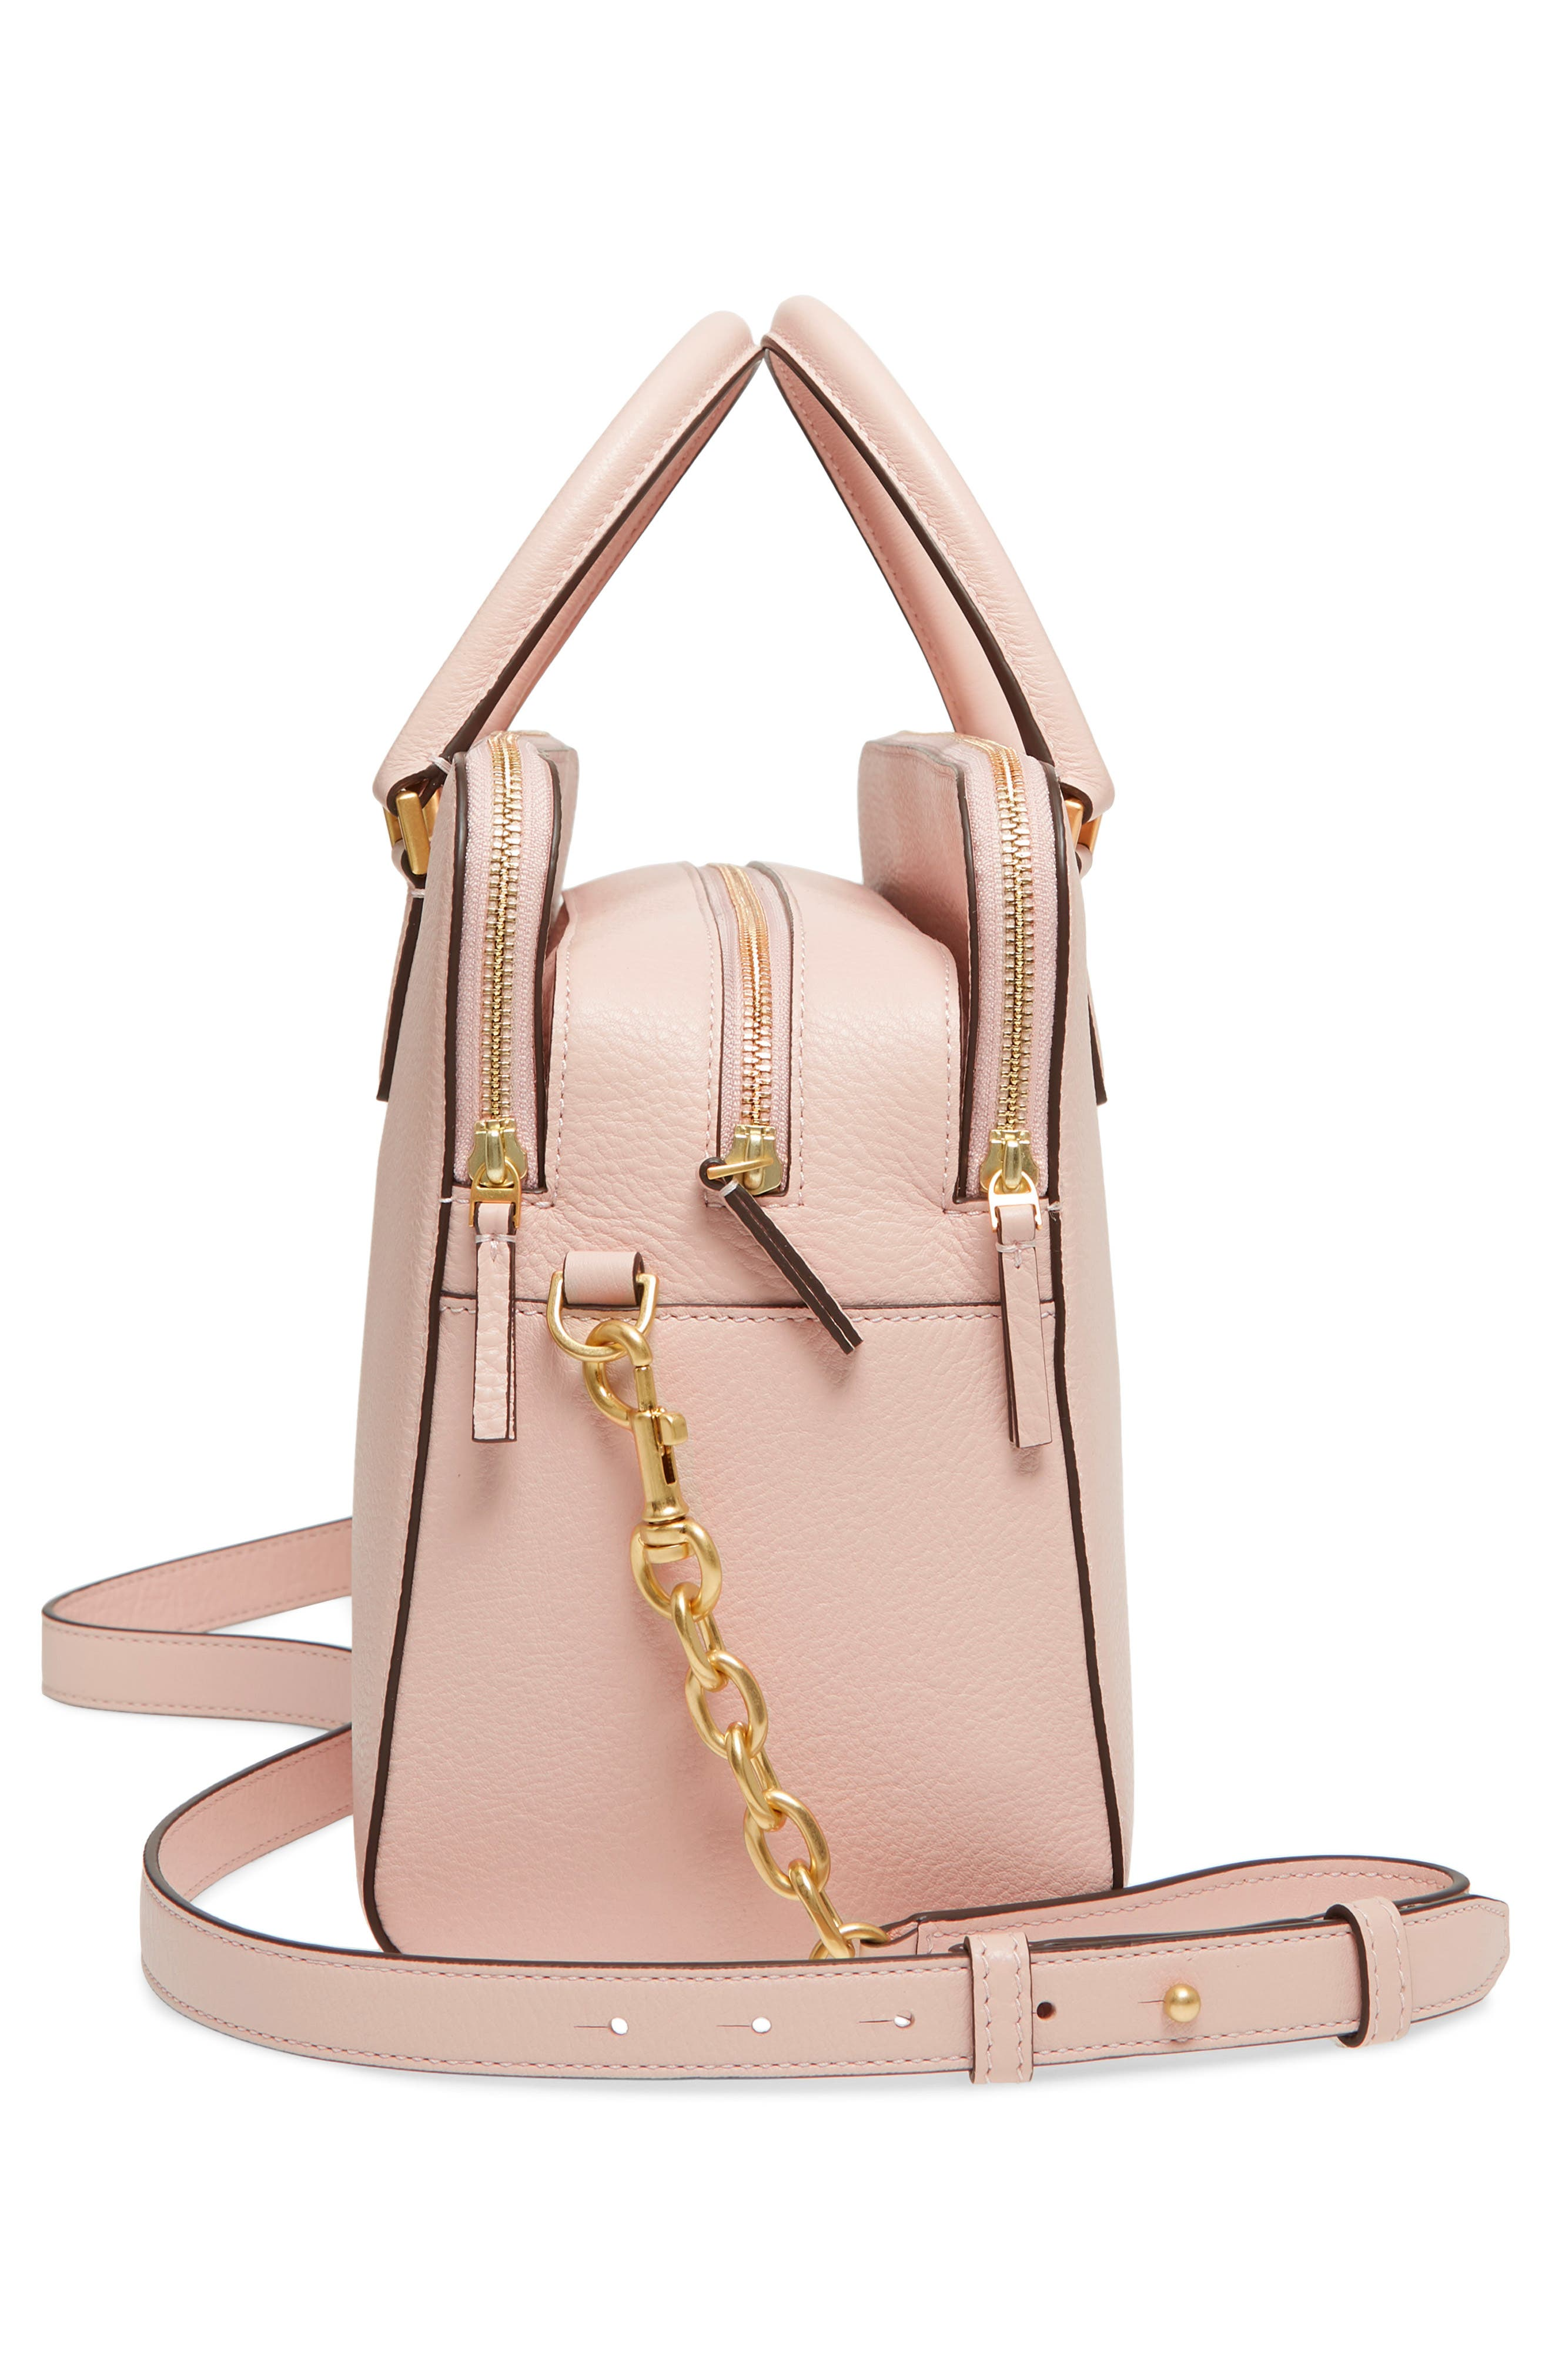 Georgia Double Zip Pebbled Leather Satchel,                             Alternate thumbnail 4, color,                             Shell Pink